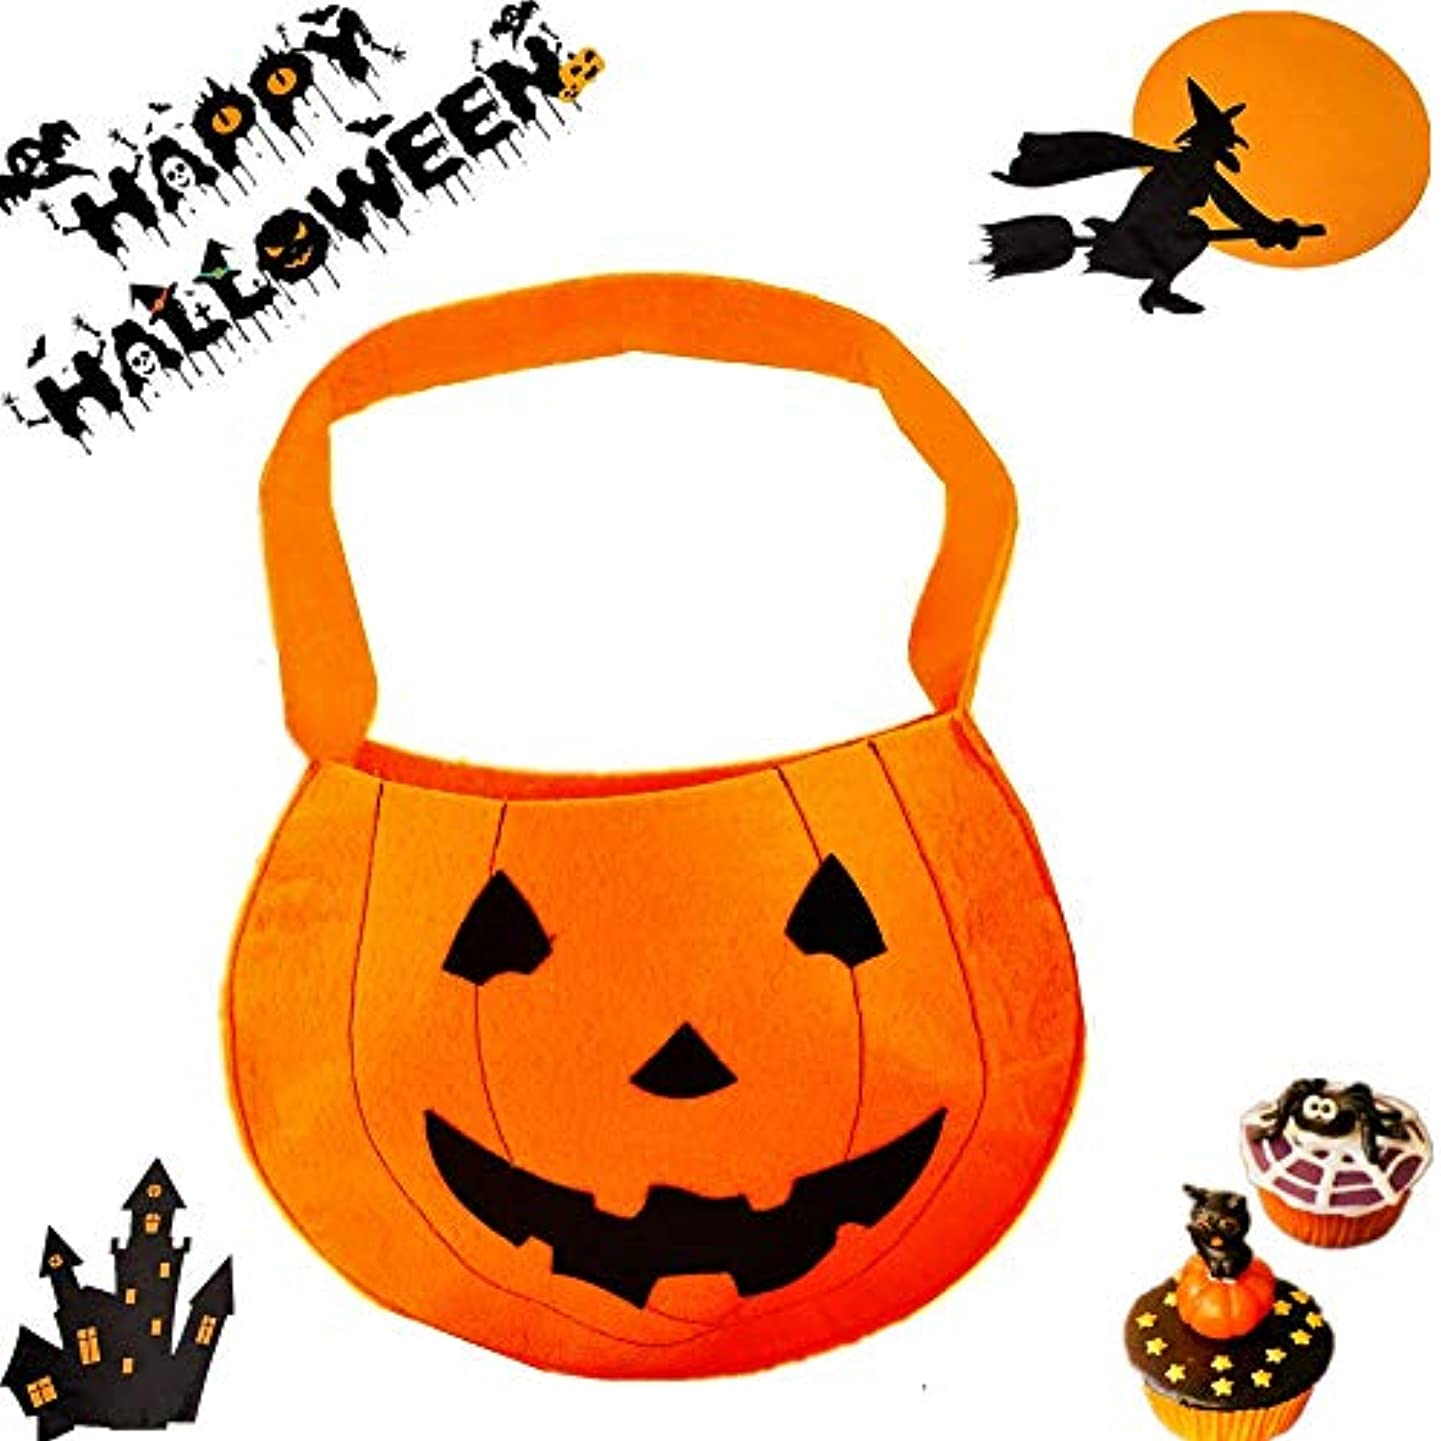 JeVenis Pumpkin Bags Pumpkin Goodie Bags Halloween Party Favor Bags Paper Gift Bags Goody Bags for Halloween Party Decorations Supplies